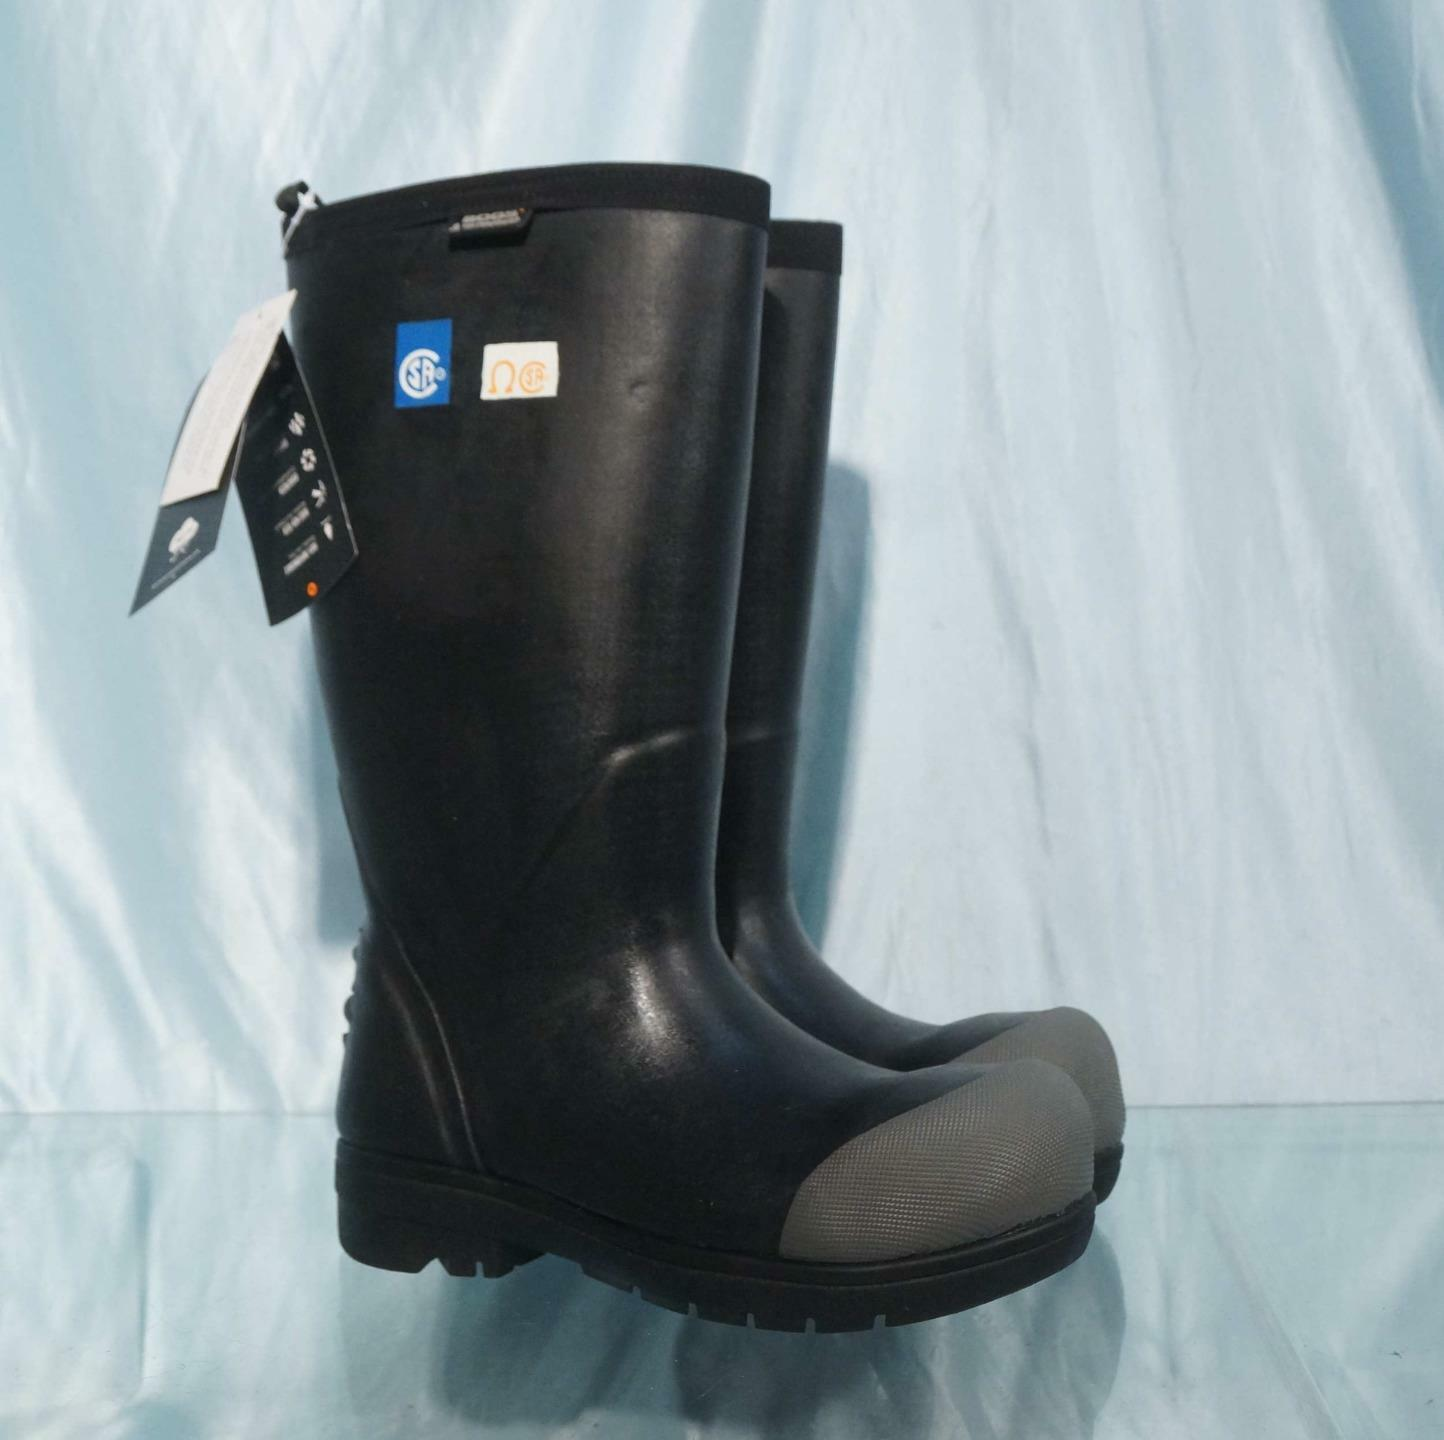 Black BOGS FOOD PRO ST Insulated Waterproof Steel Toe Muck Boots Sz 5 New w Tags